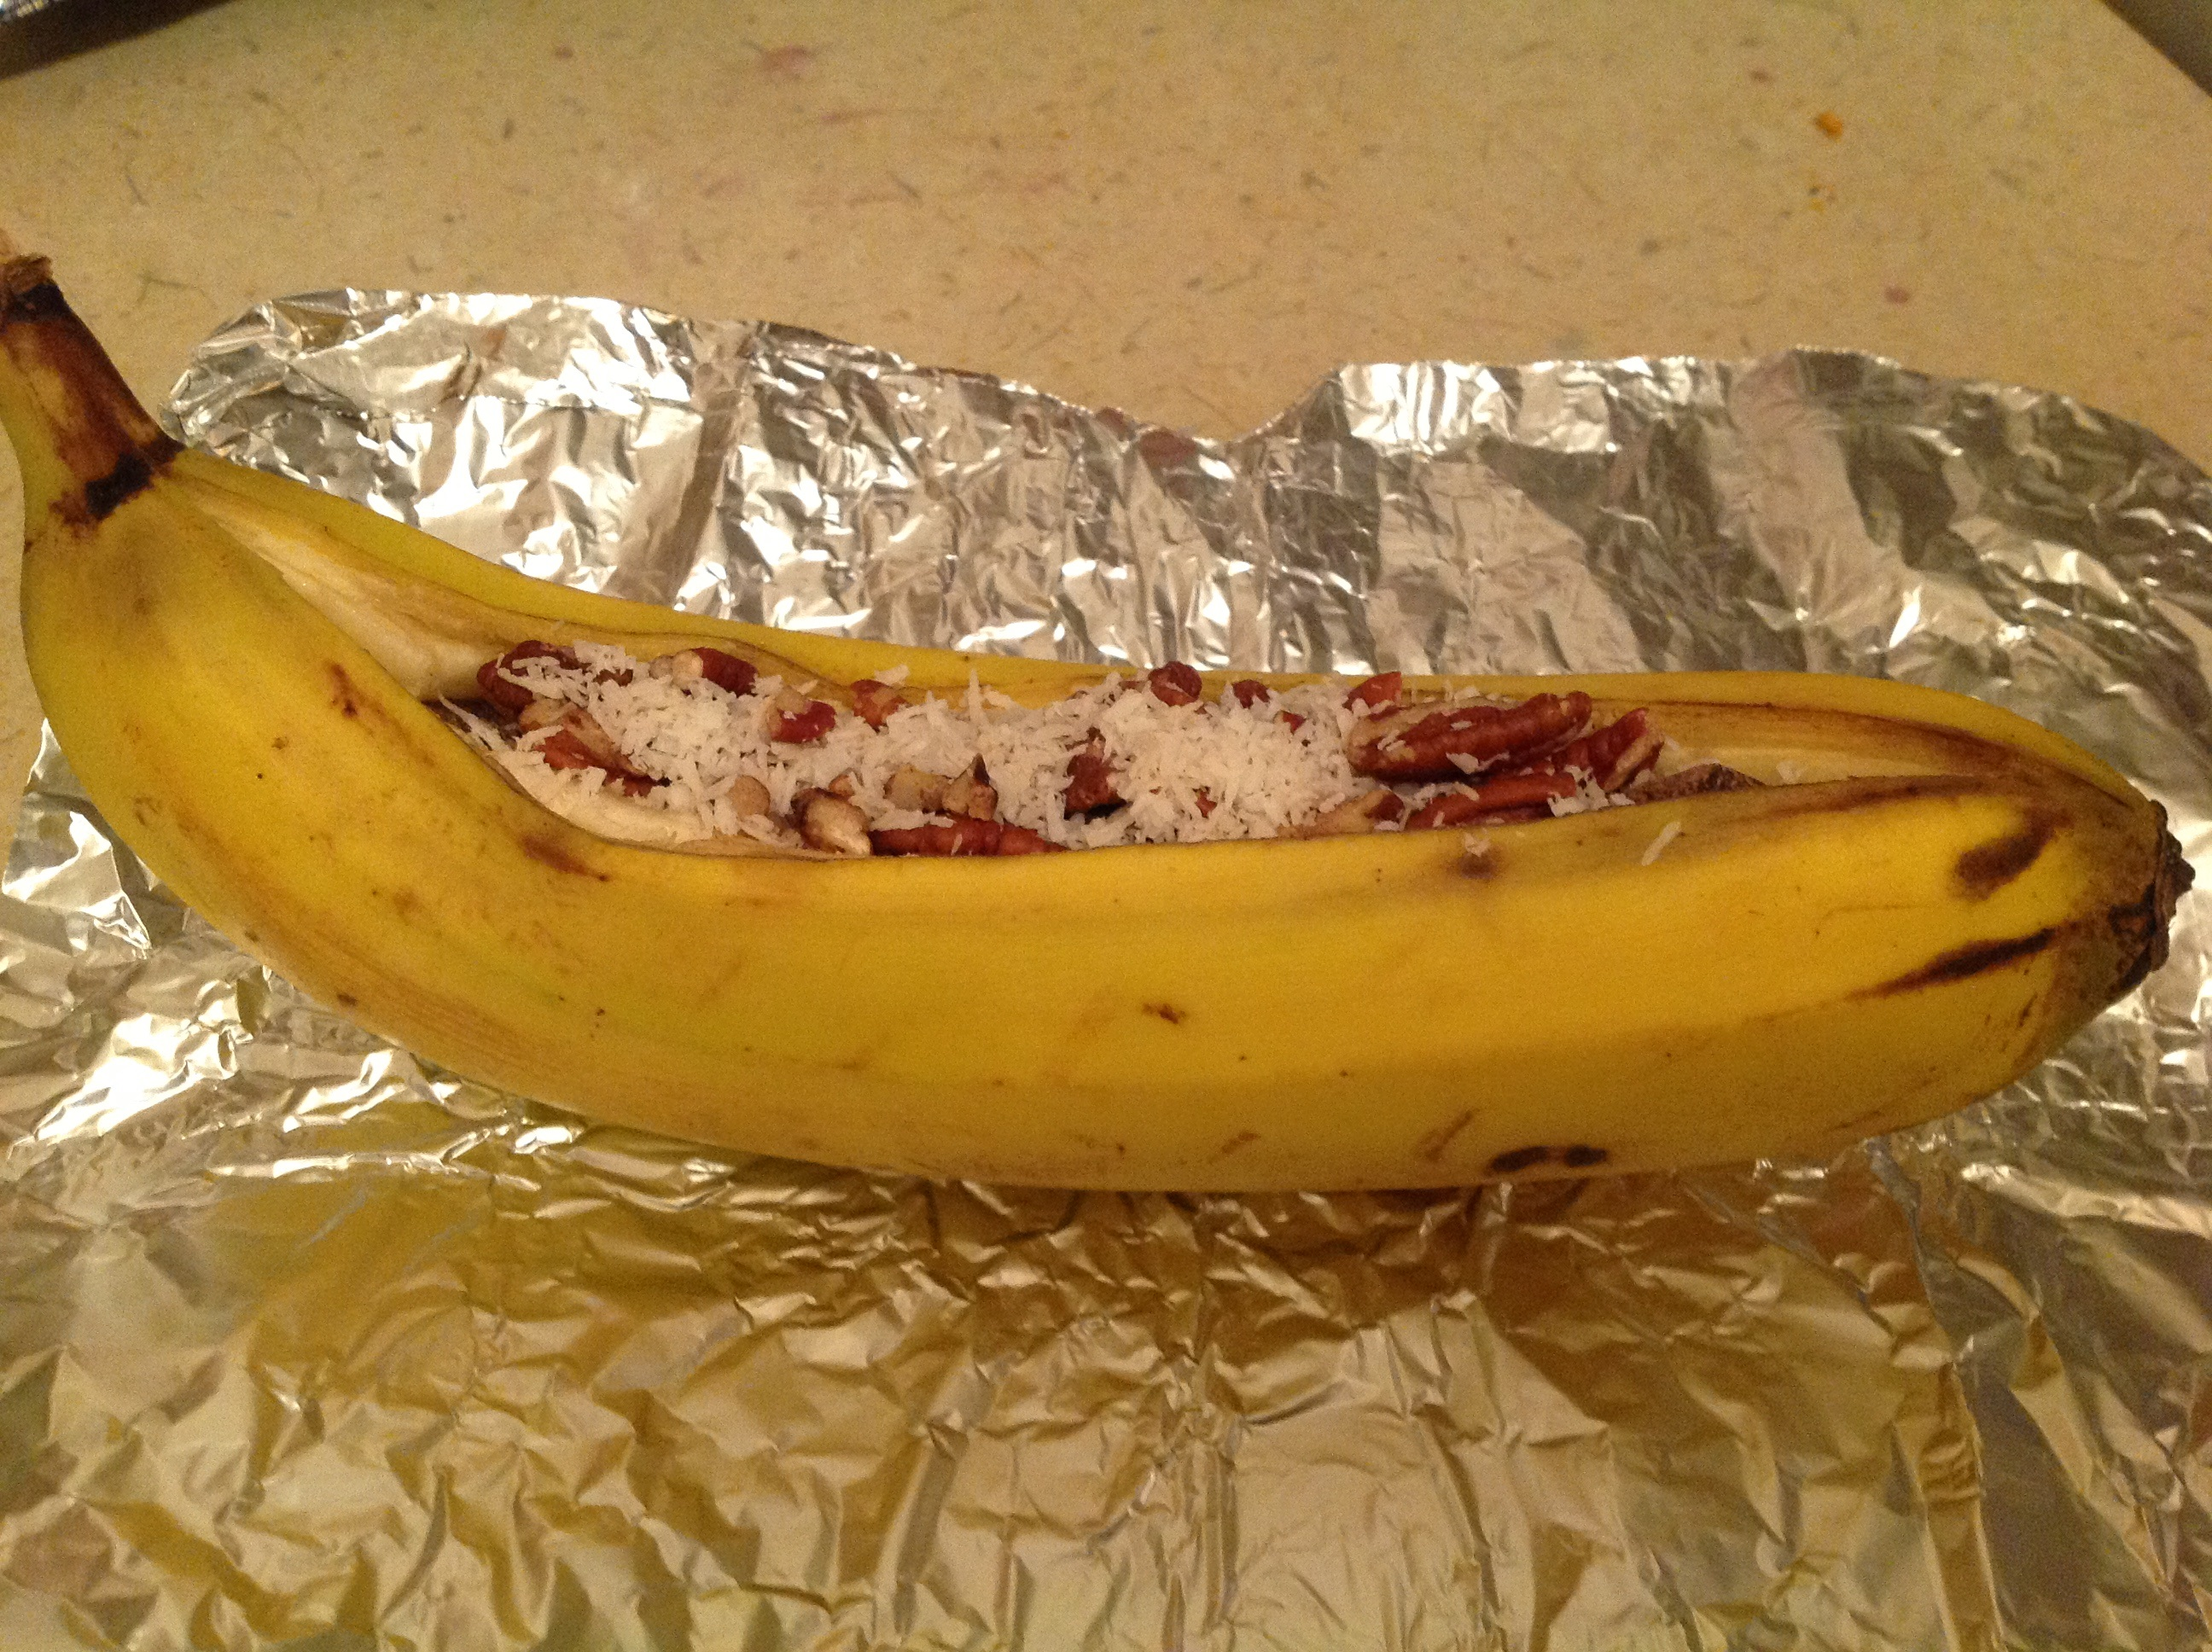 Campfire Stuffed Bananas on tinfoil before cooking.